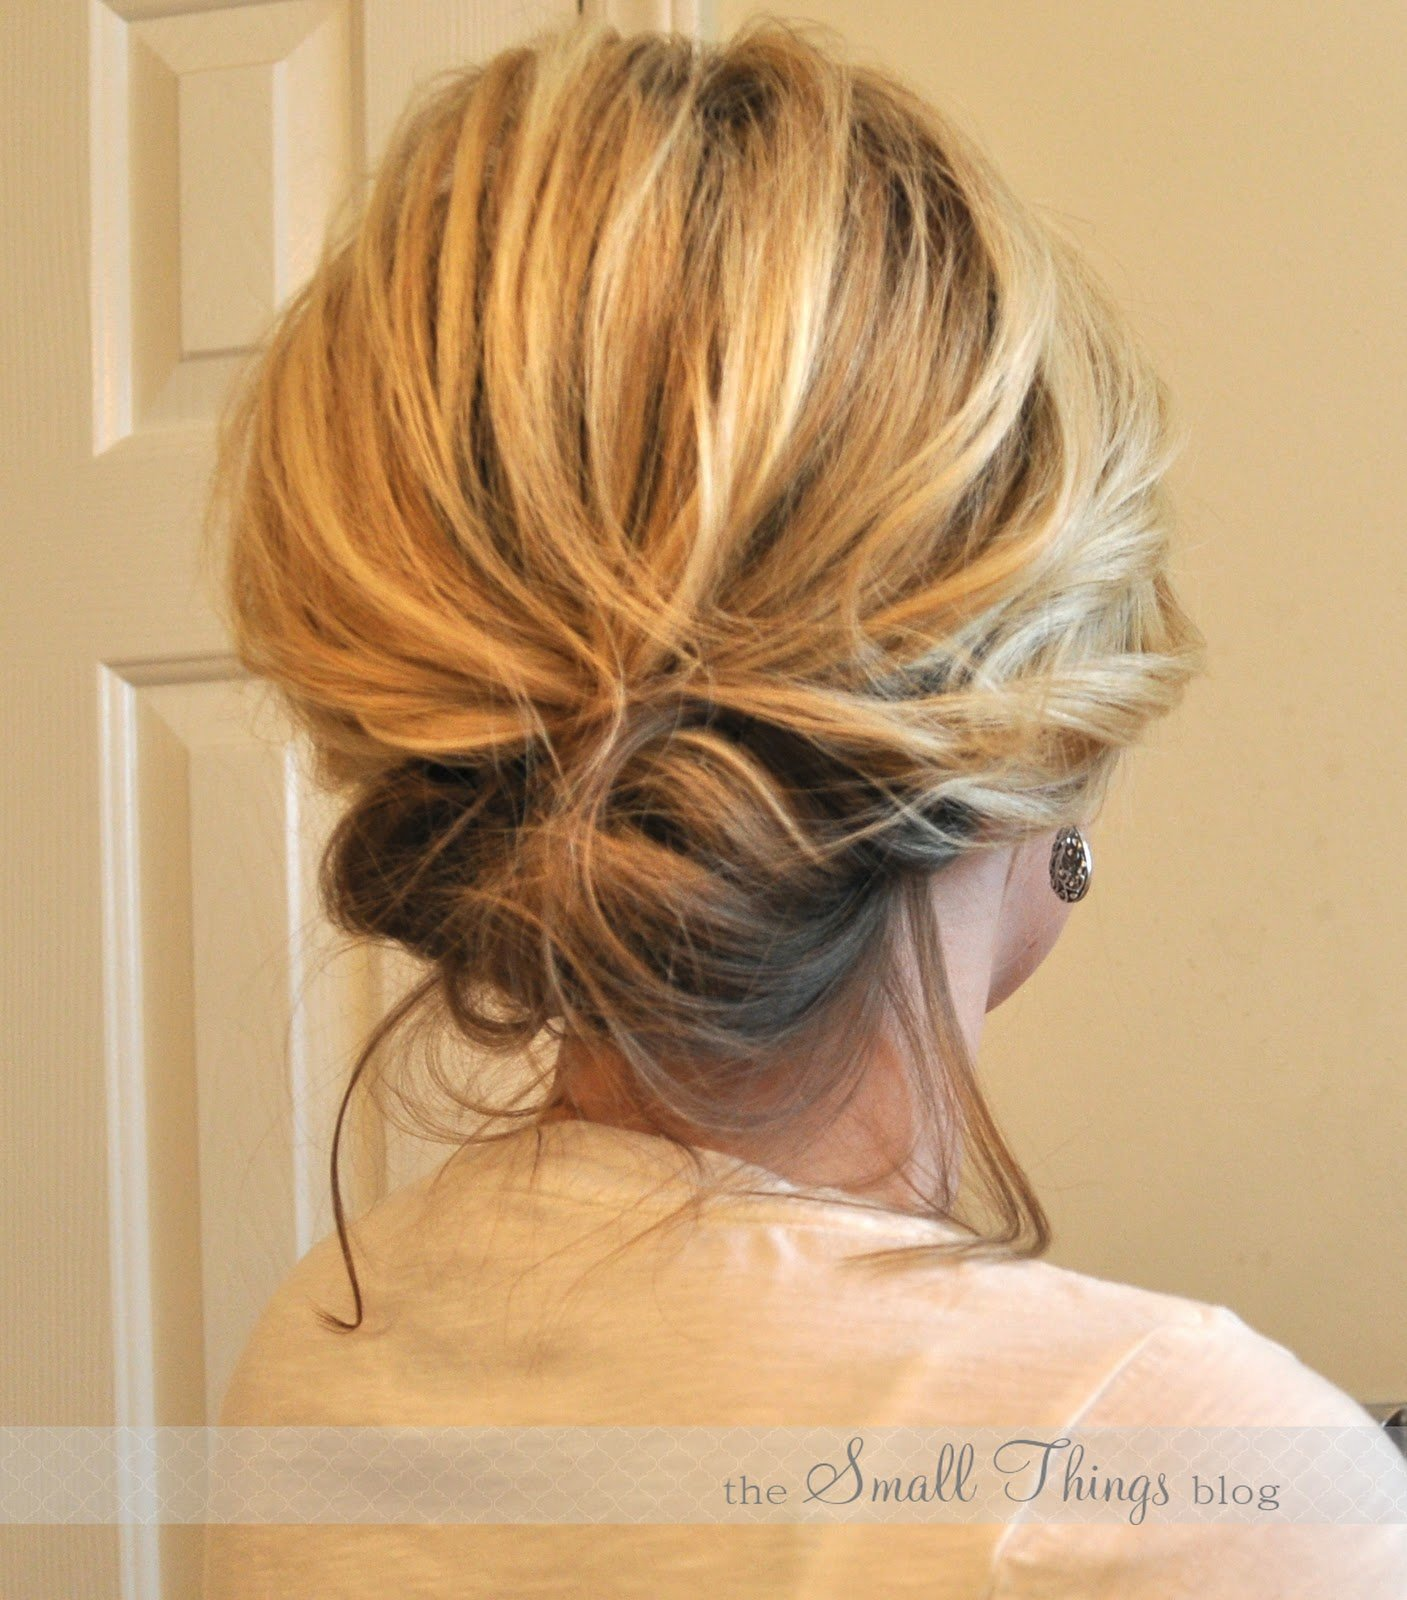 The Best The Chic Updo – The Small Things Blog Pictures